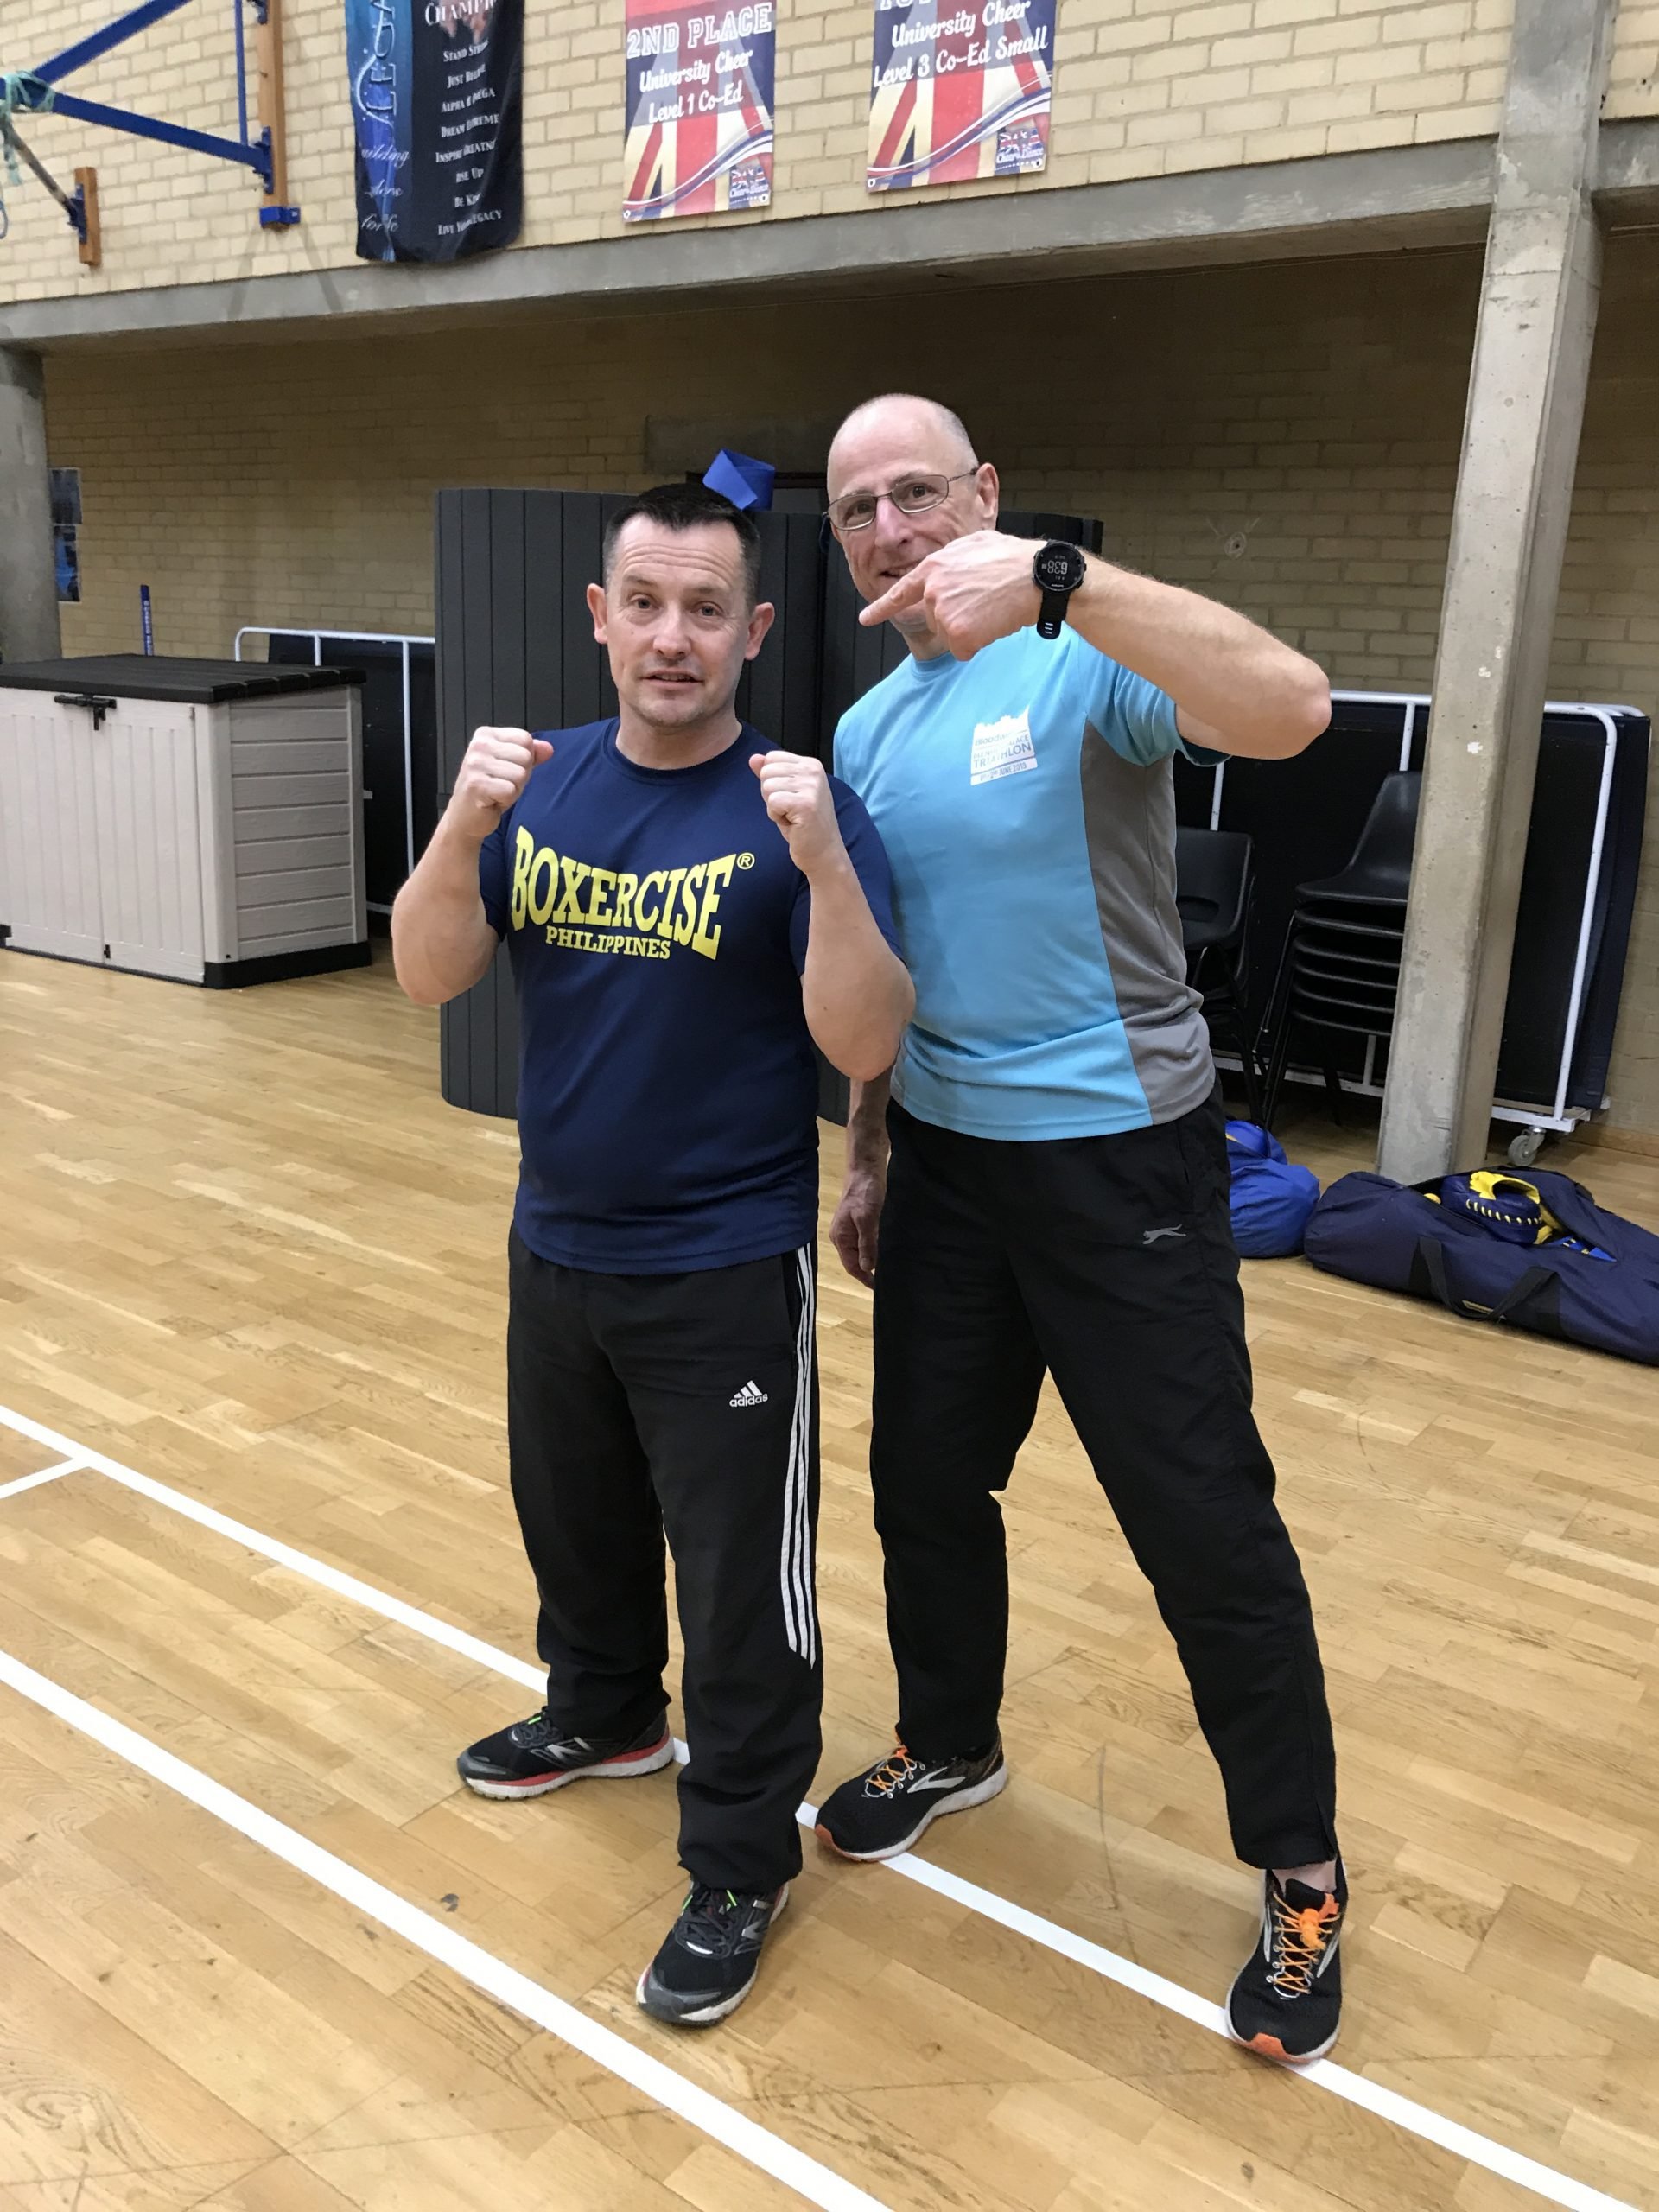 Boxing Clever with Boxercise!